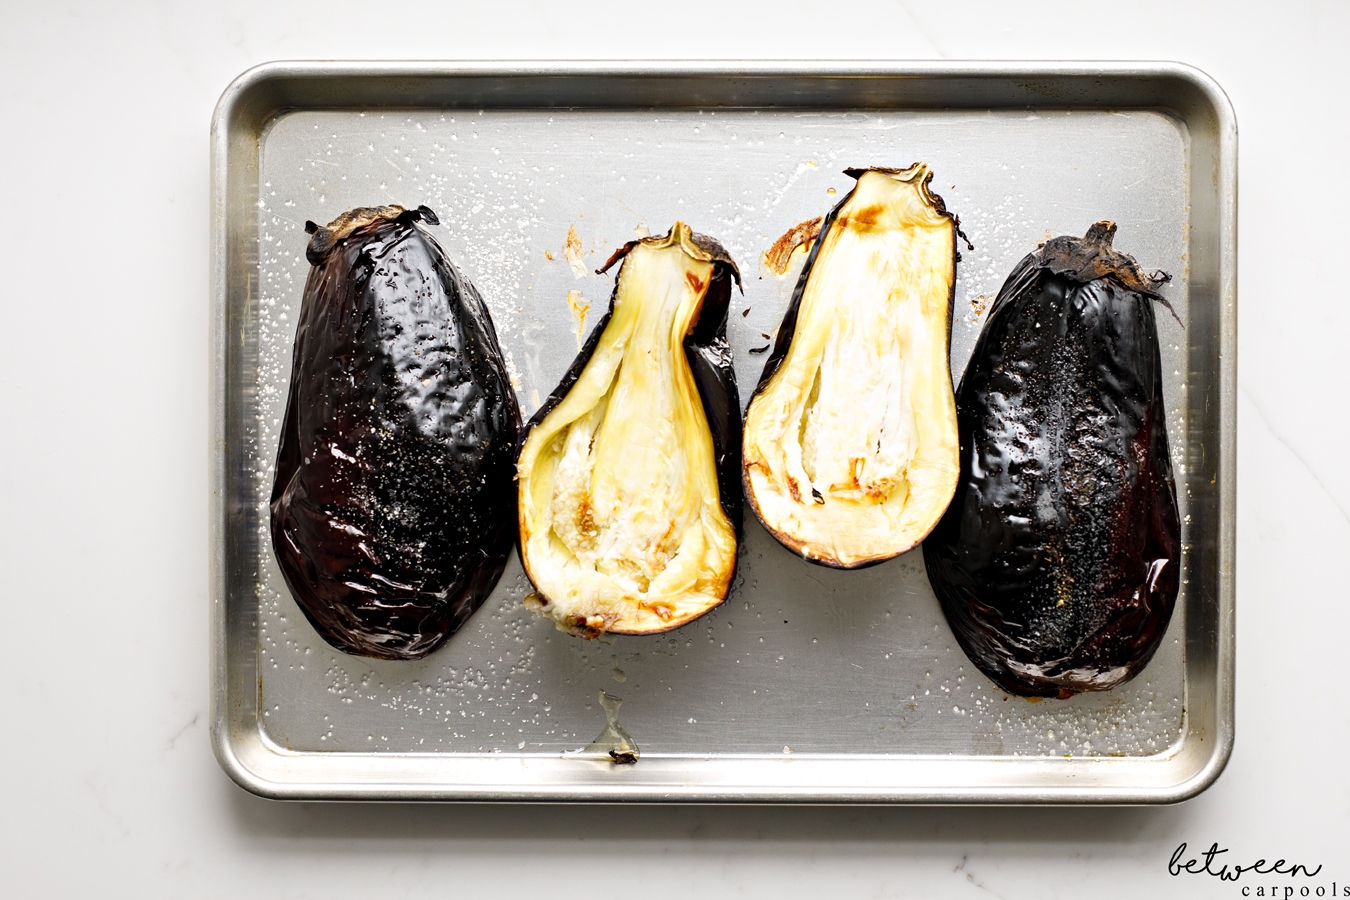 The Best Way to Roast an Eggplant. Want an eggplant with a soft, silky, tender flesh and smoky charred skin? Here's how to achieve it.